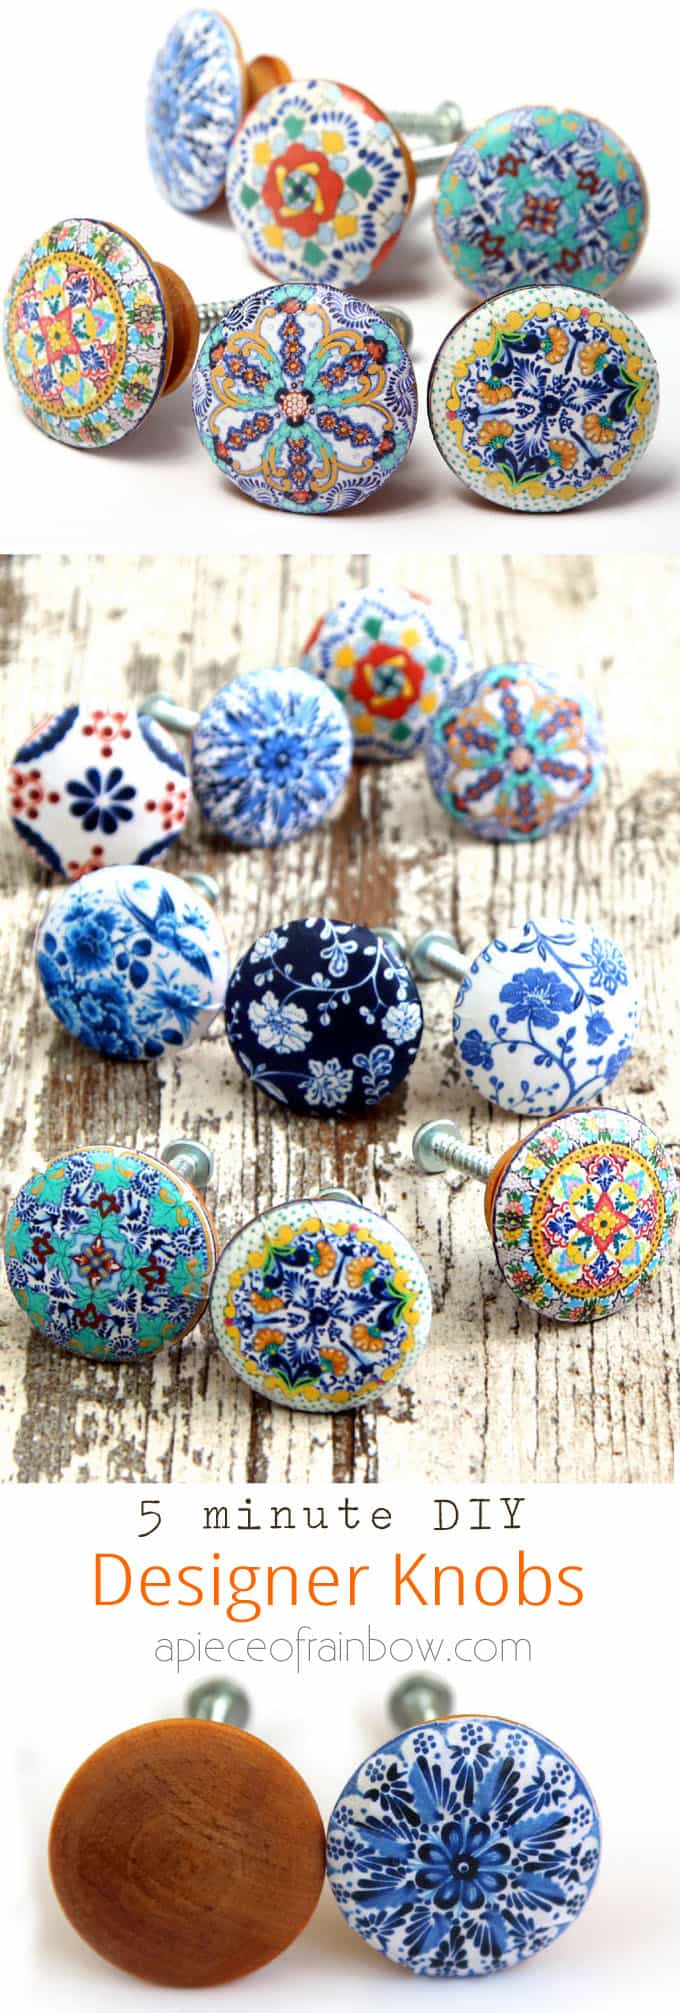 5-minute-designer-knobs-apieceofrainbow-blog-1 (1).jpg